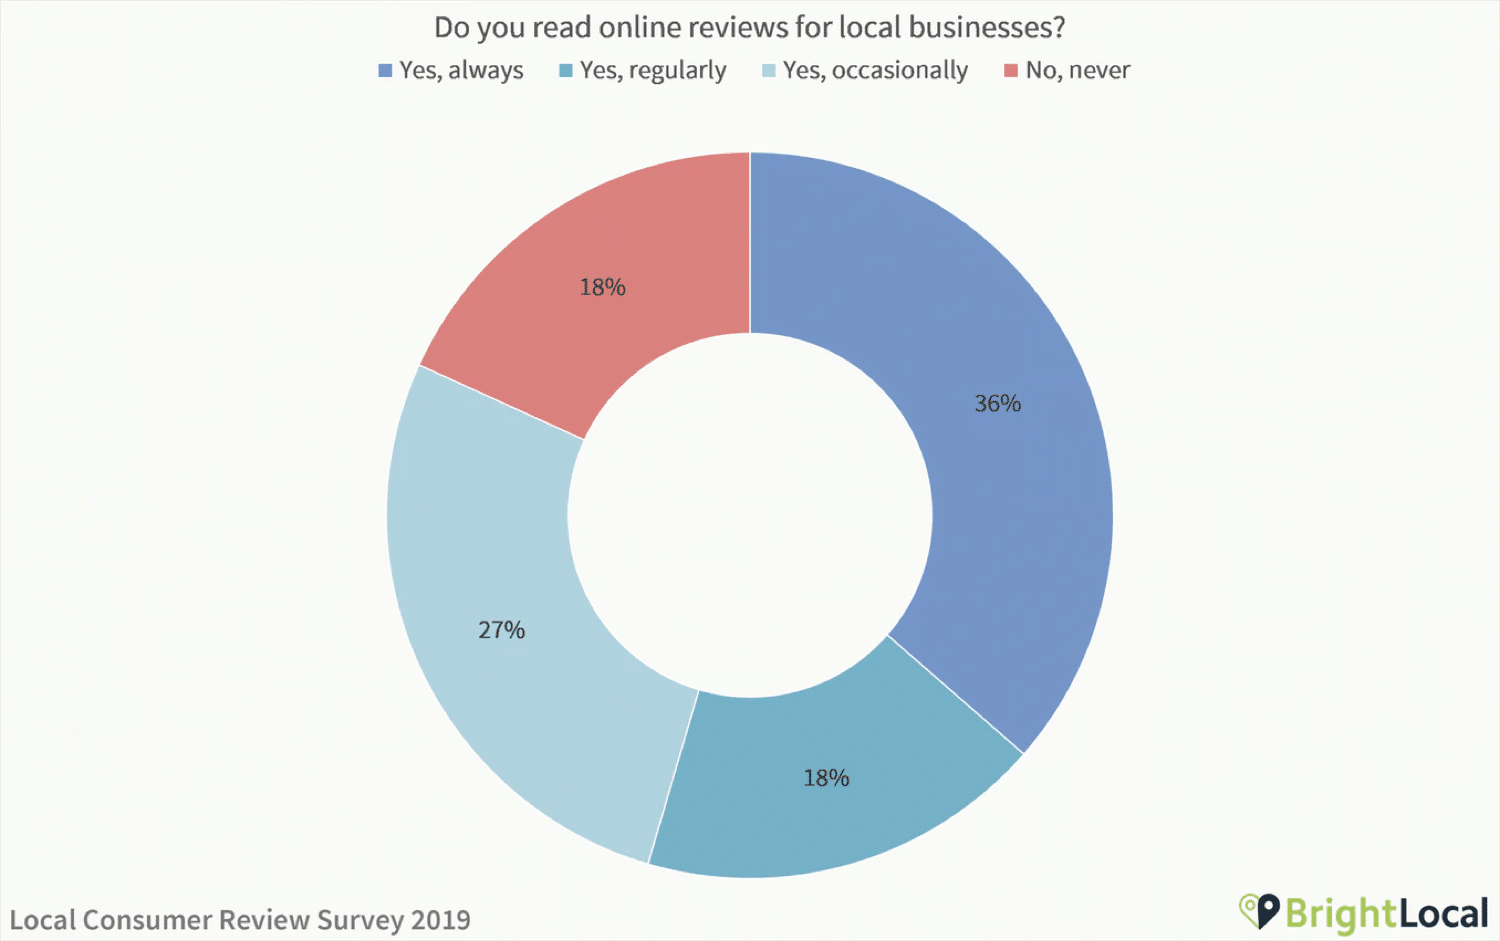 Results from a local consumer review study